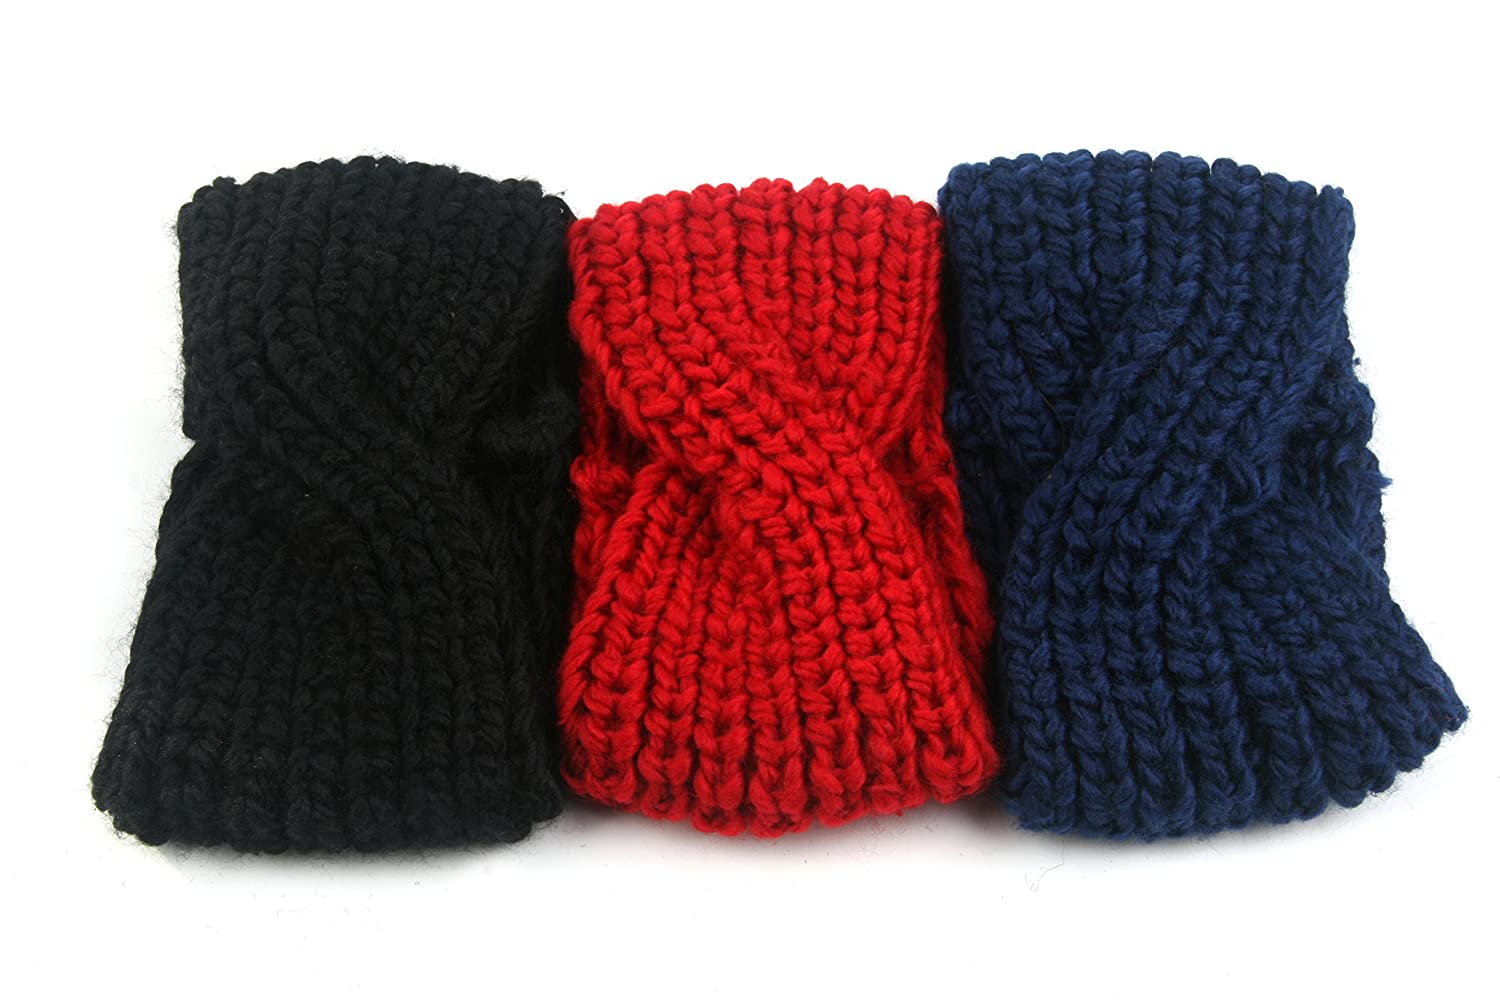 3pcs. Chunky Knit Turban Headband Ear Warmer 904HB 904HB-BkRdBl